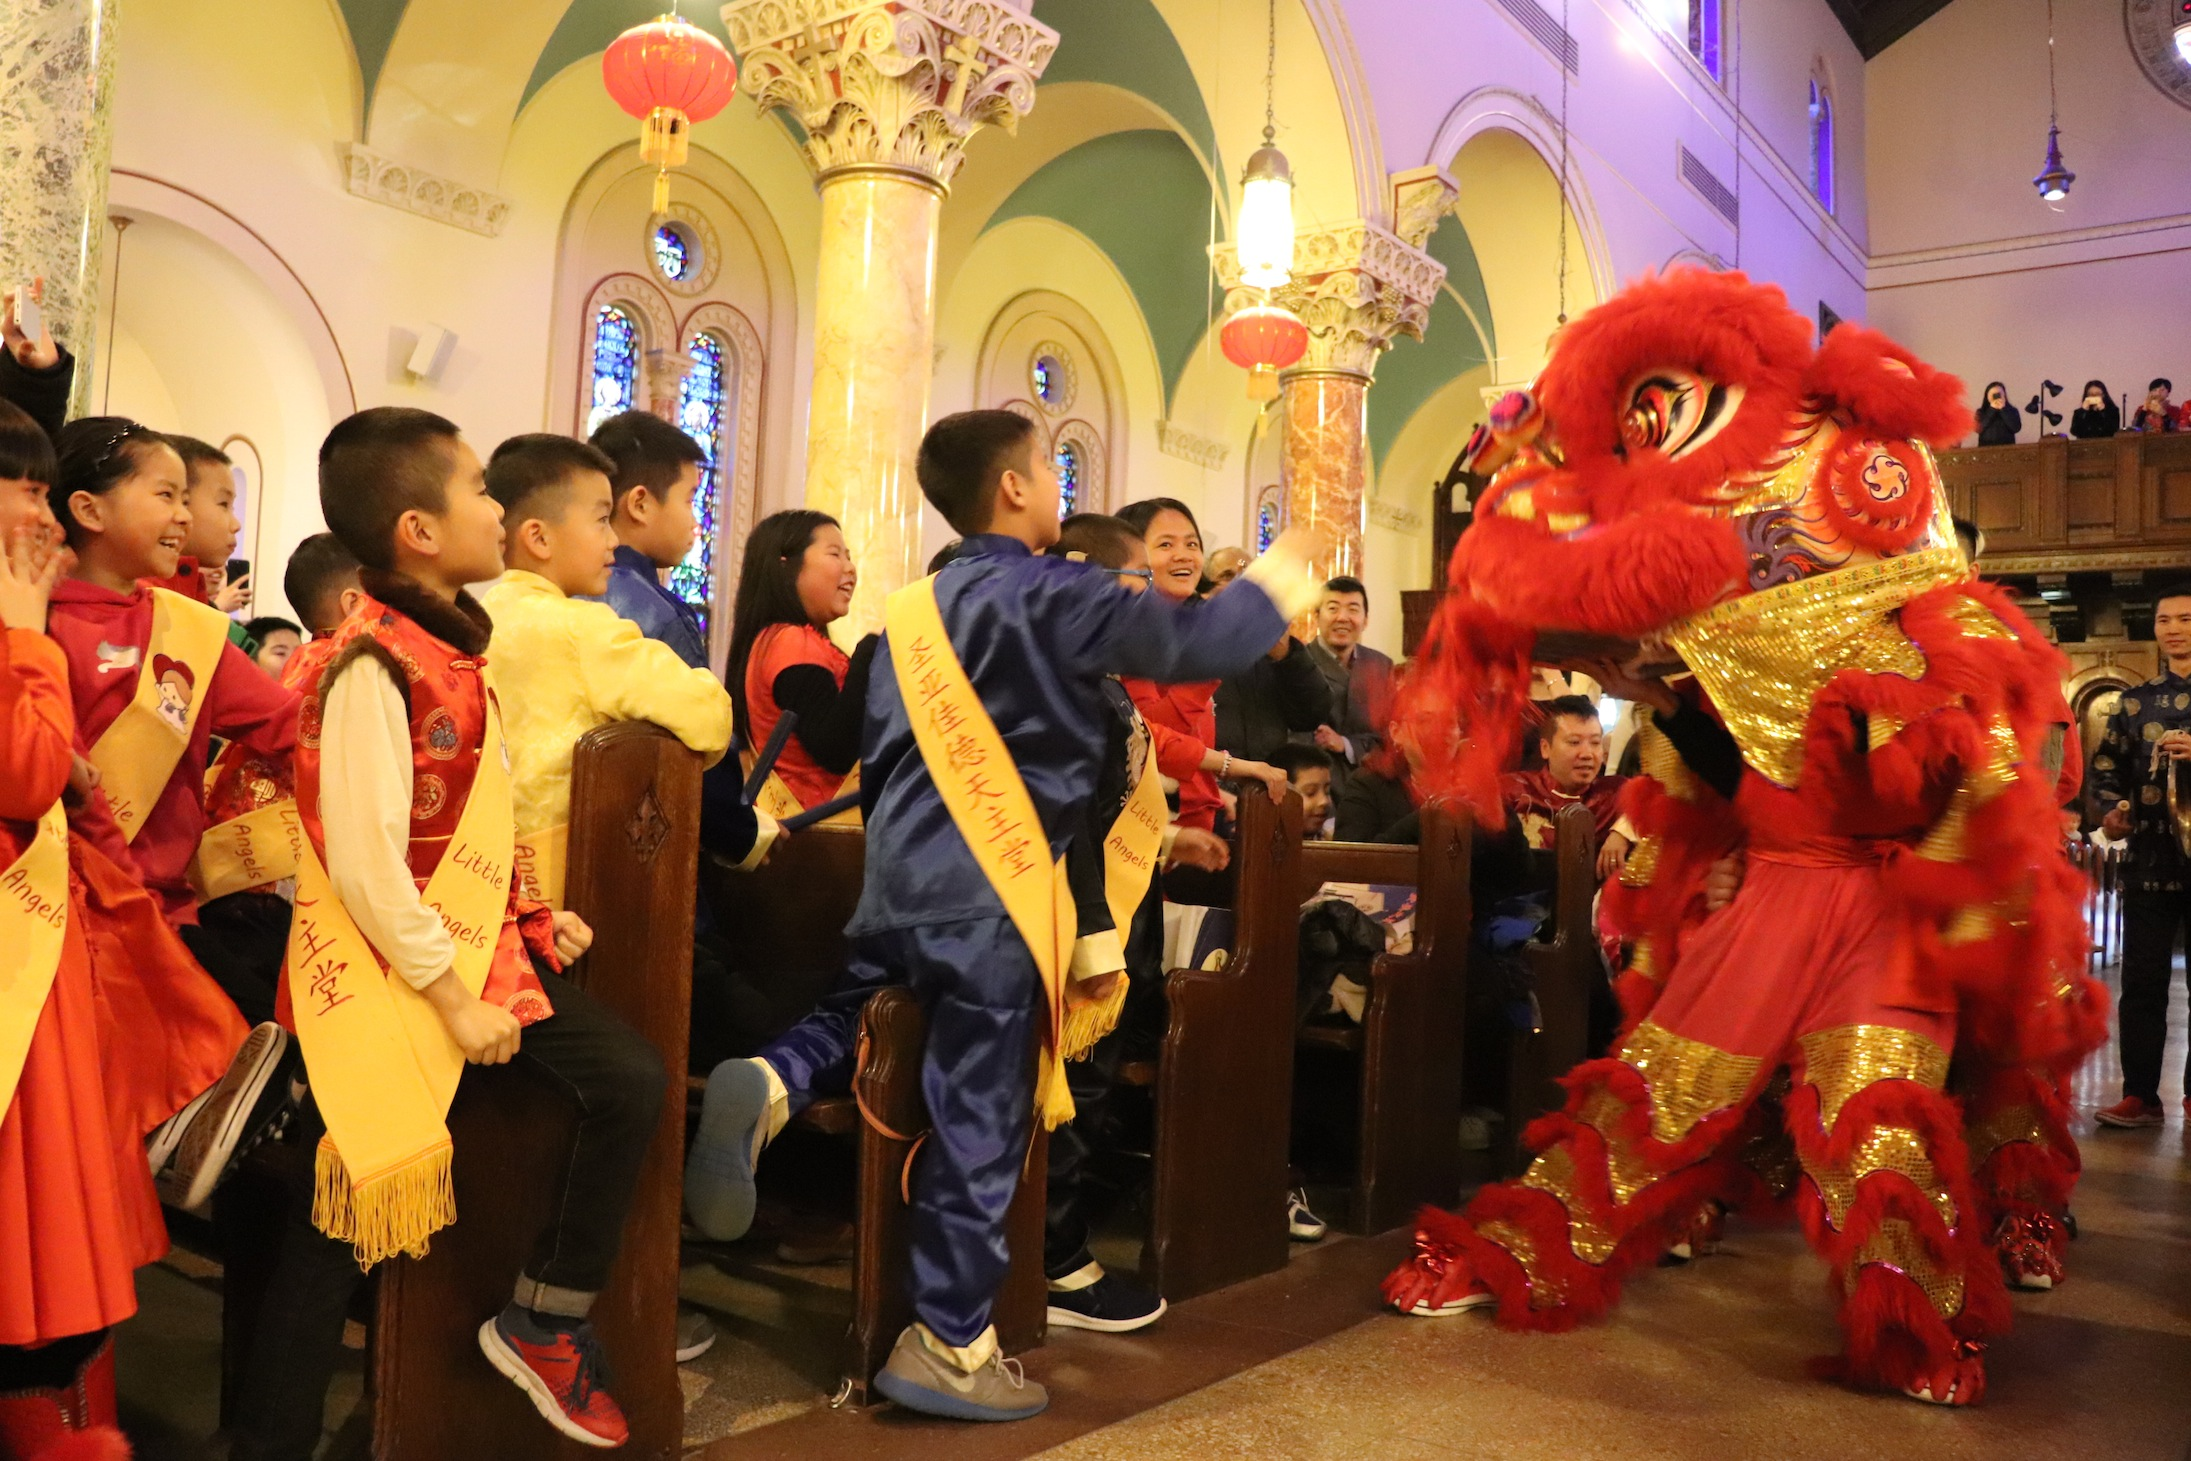 a festive dragon followed to the glee of the children the traditional red dragon marched to the beat of drums engaging the congregation